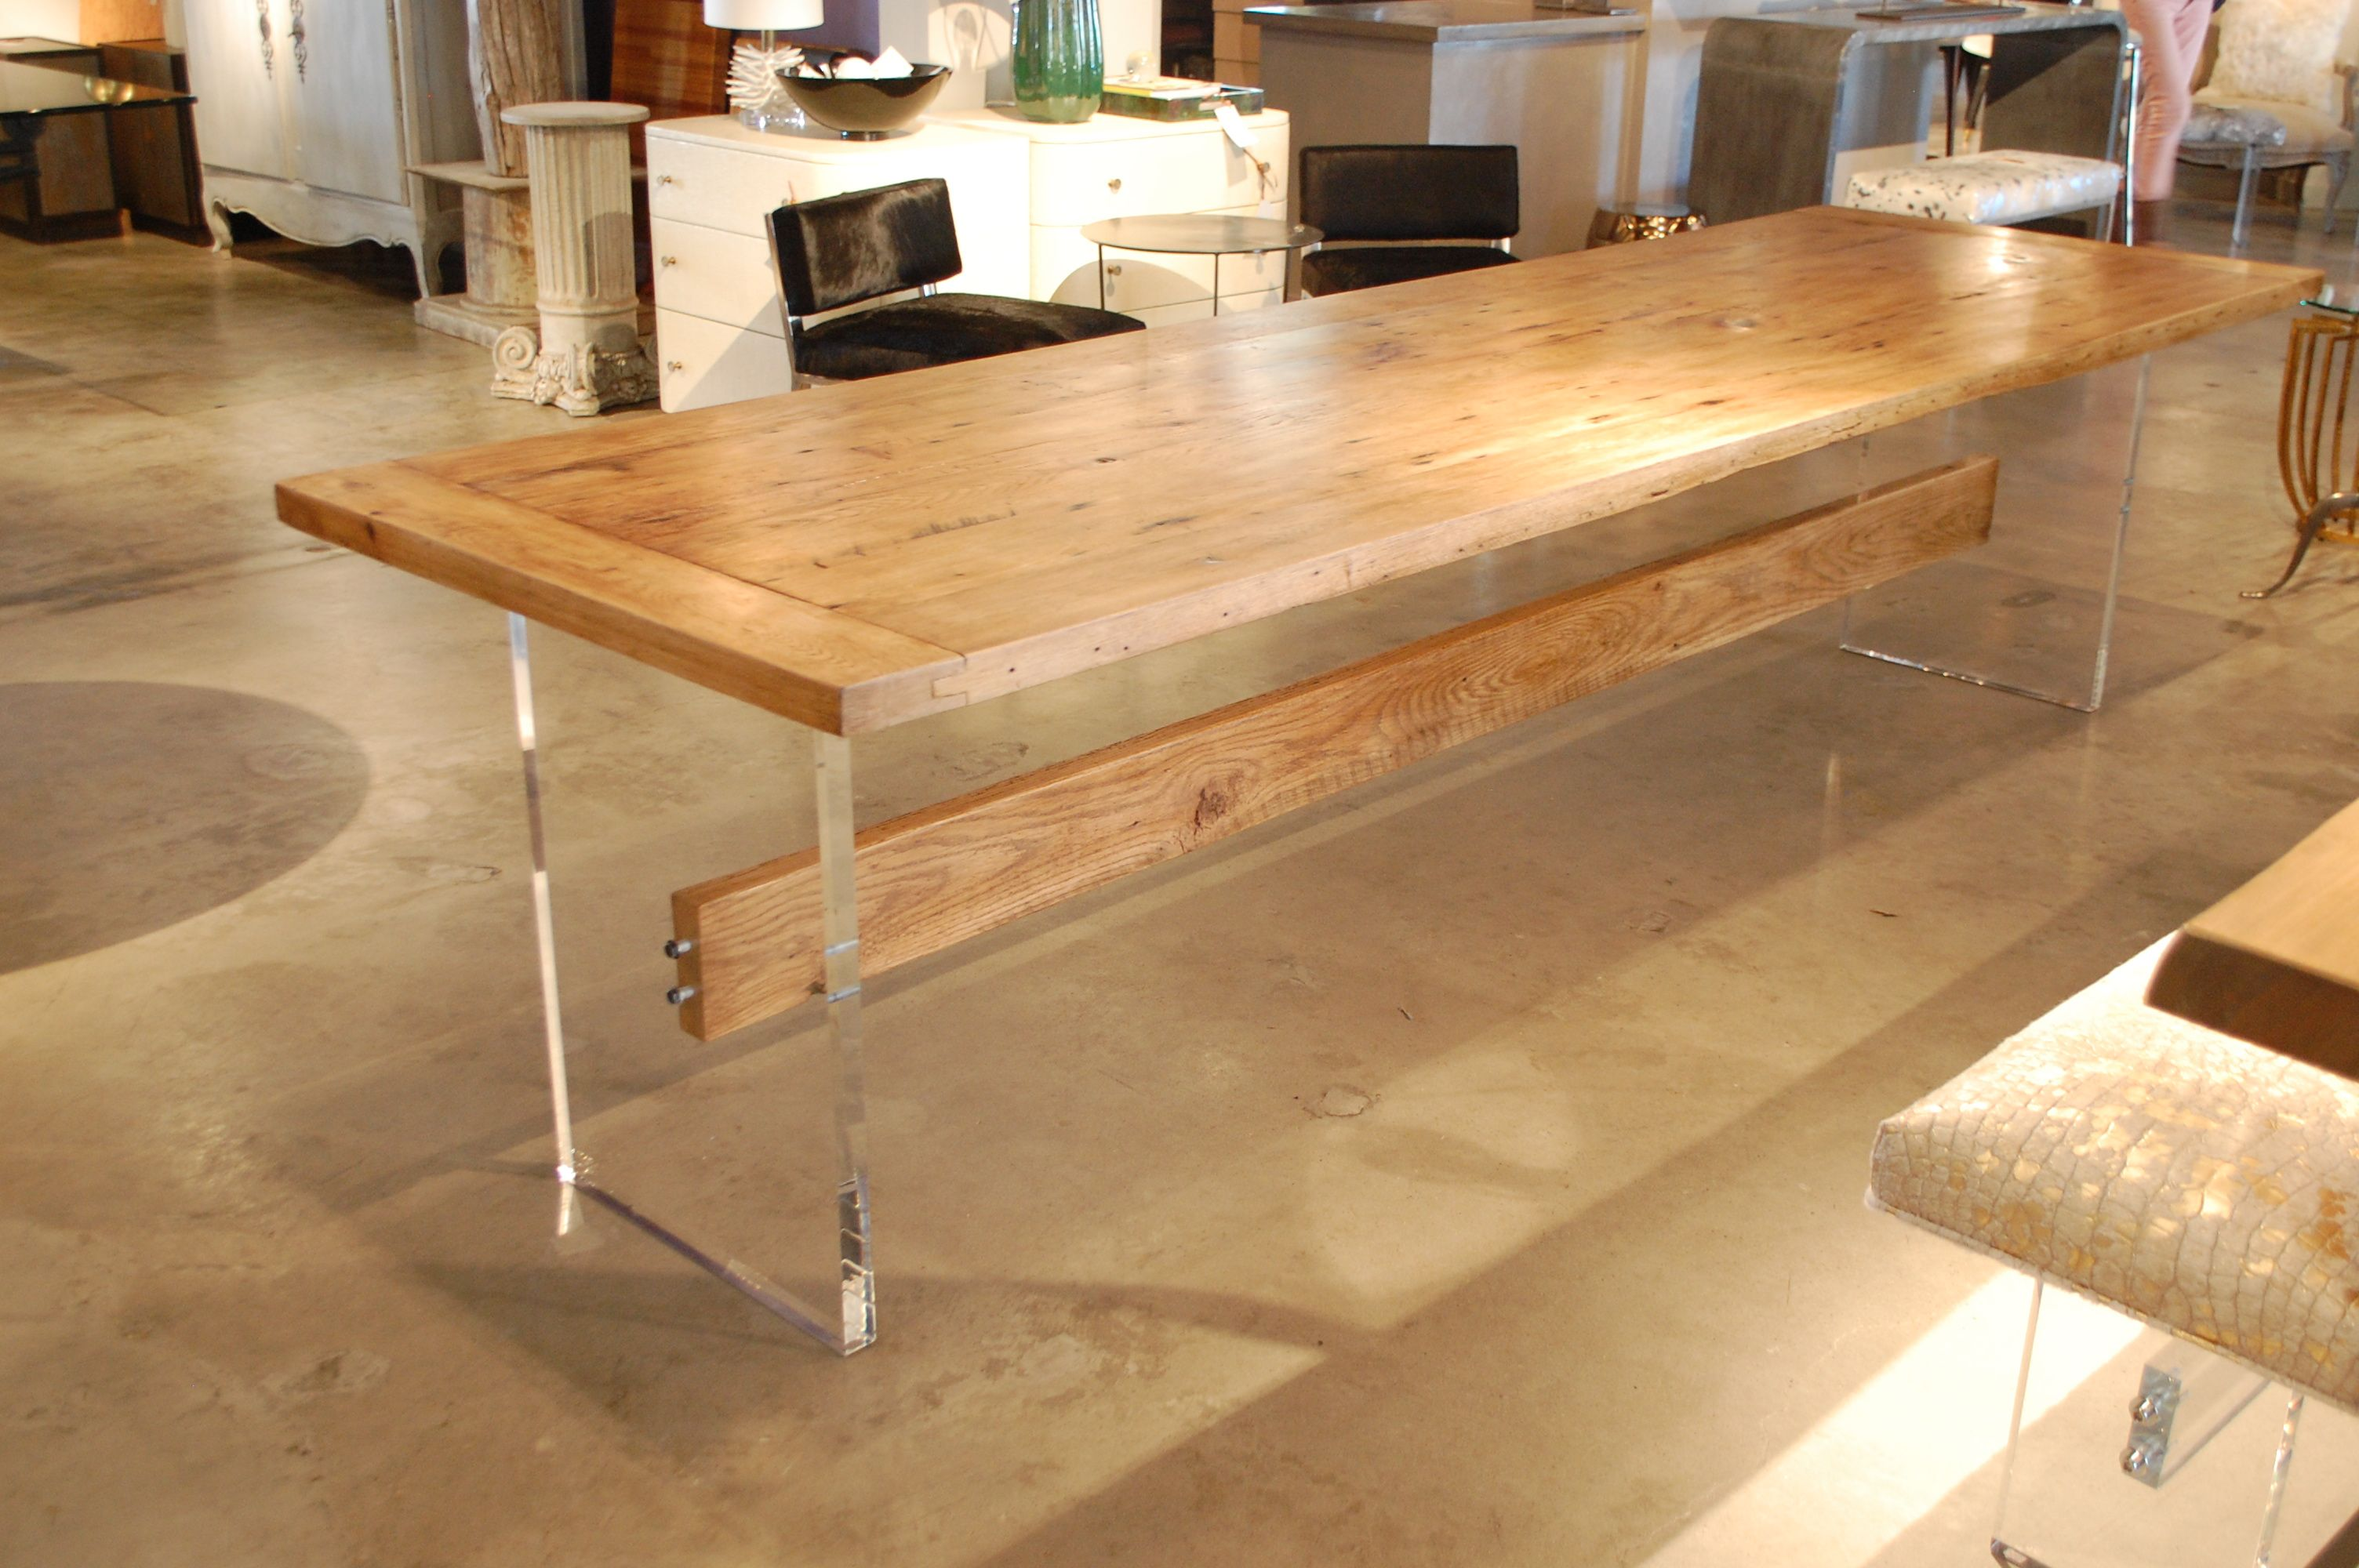 Custom Made Oak Top Table w/ Acrylic Slab Base and Wood